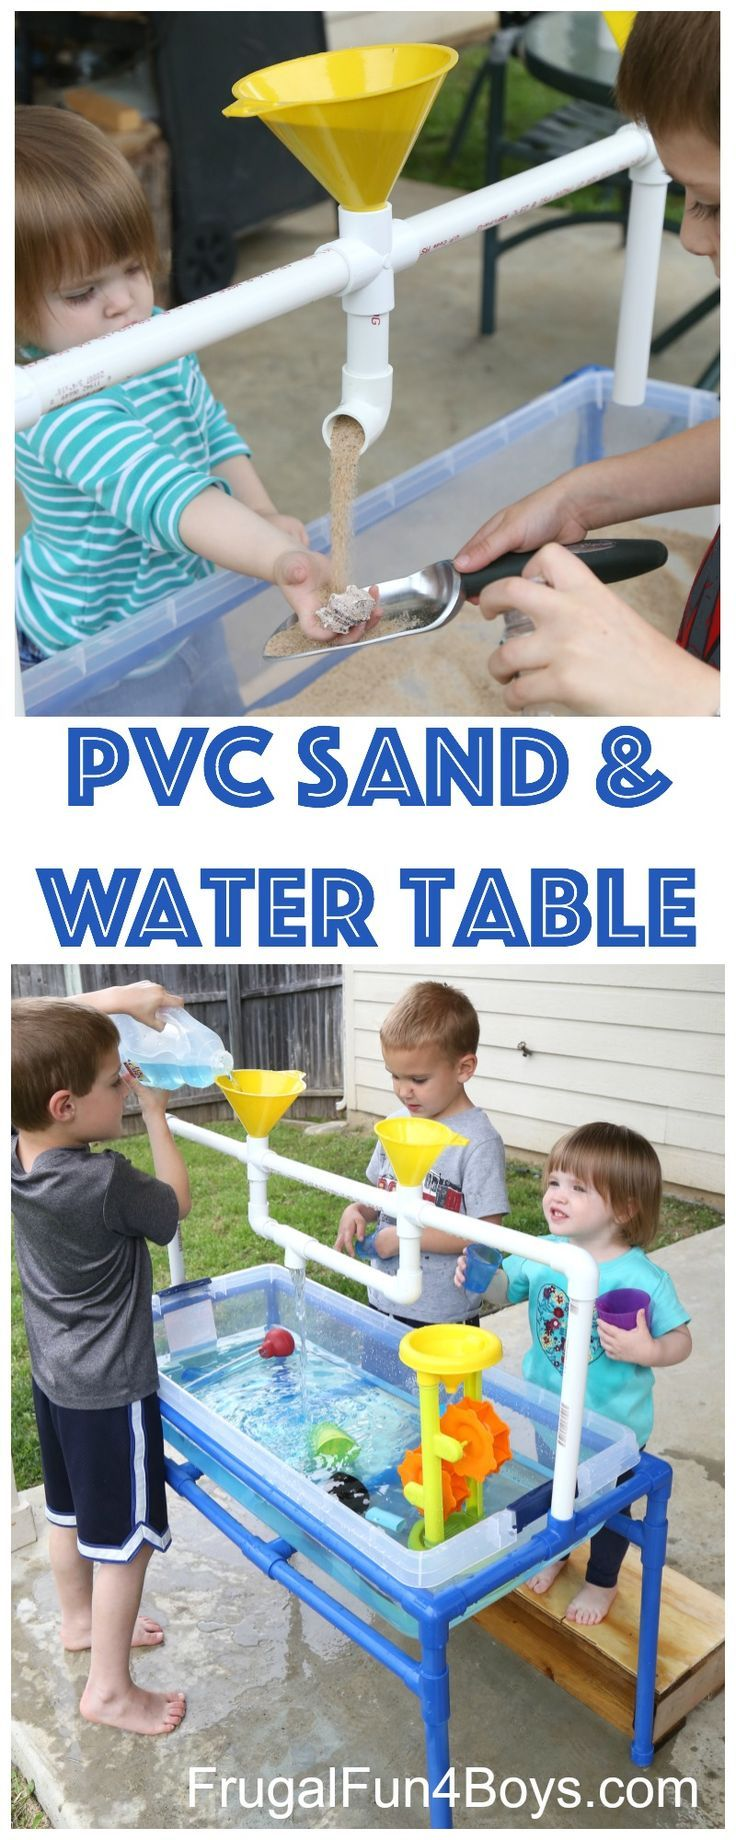 Use PVC pipe to make a sand and water table for kids! My 2, 4, and 6 year olds have been loving this sensory play table. I am loving the fact that you can change out the tubs and do either water or sand (or something else!) but not have both out at the same...Read More »